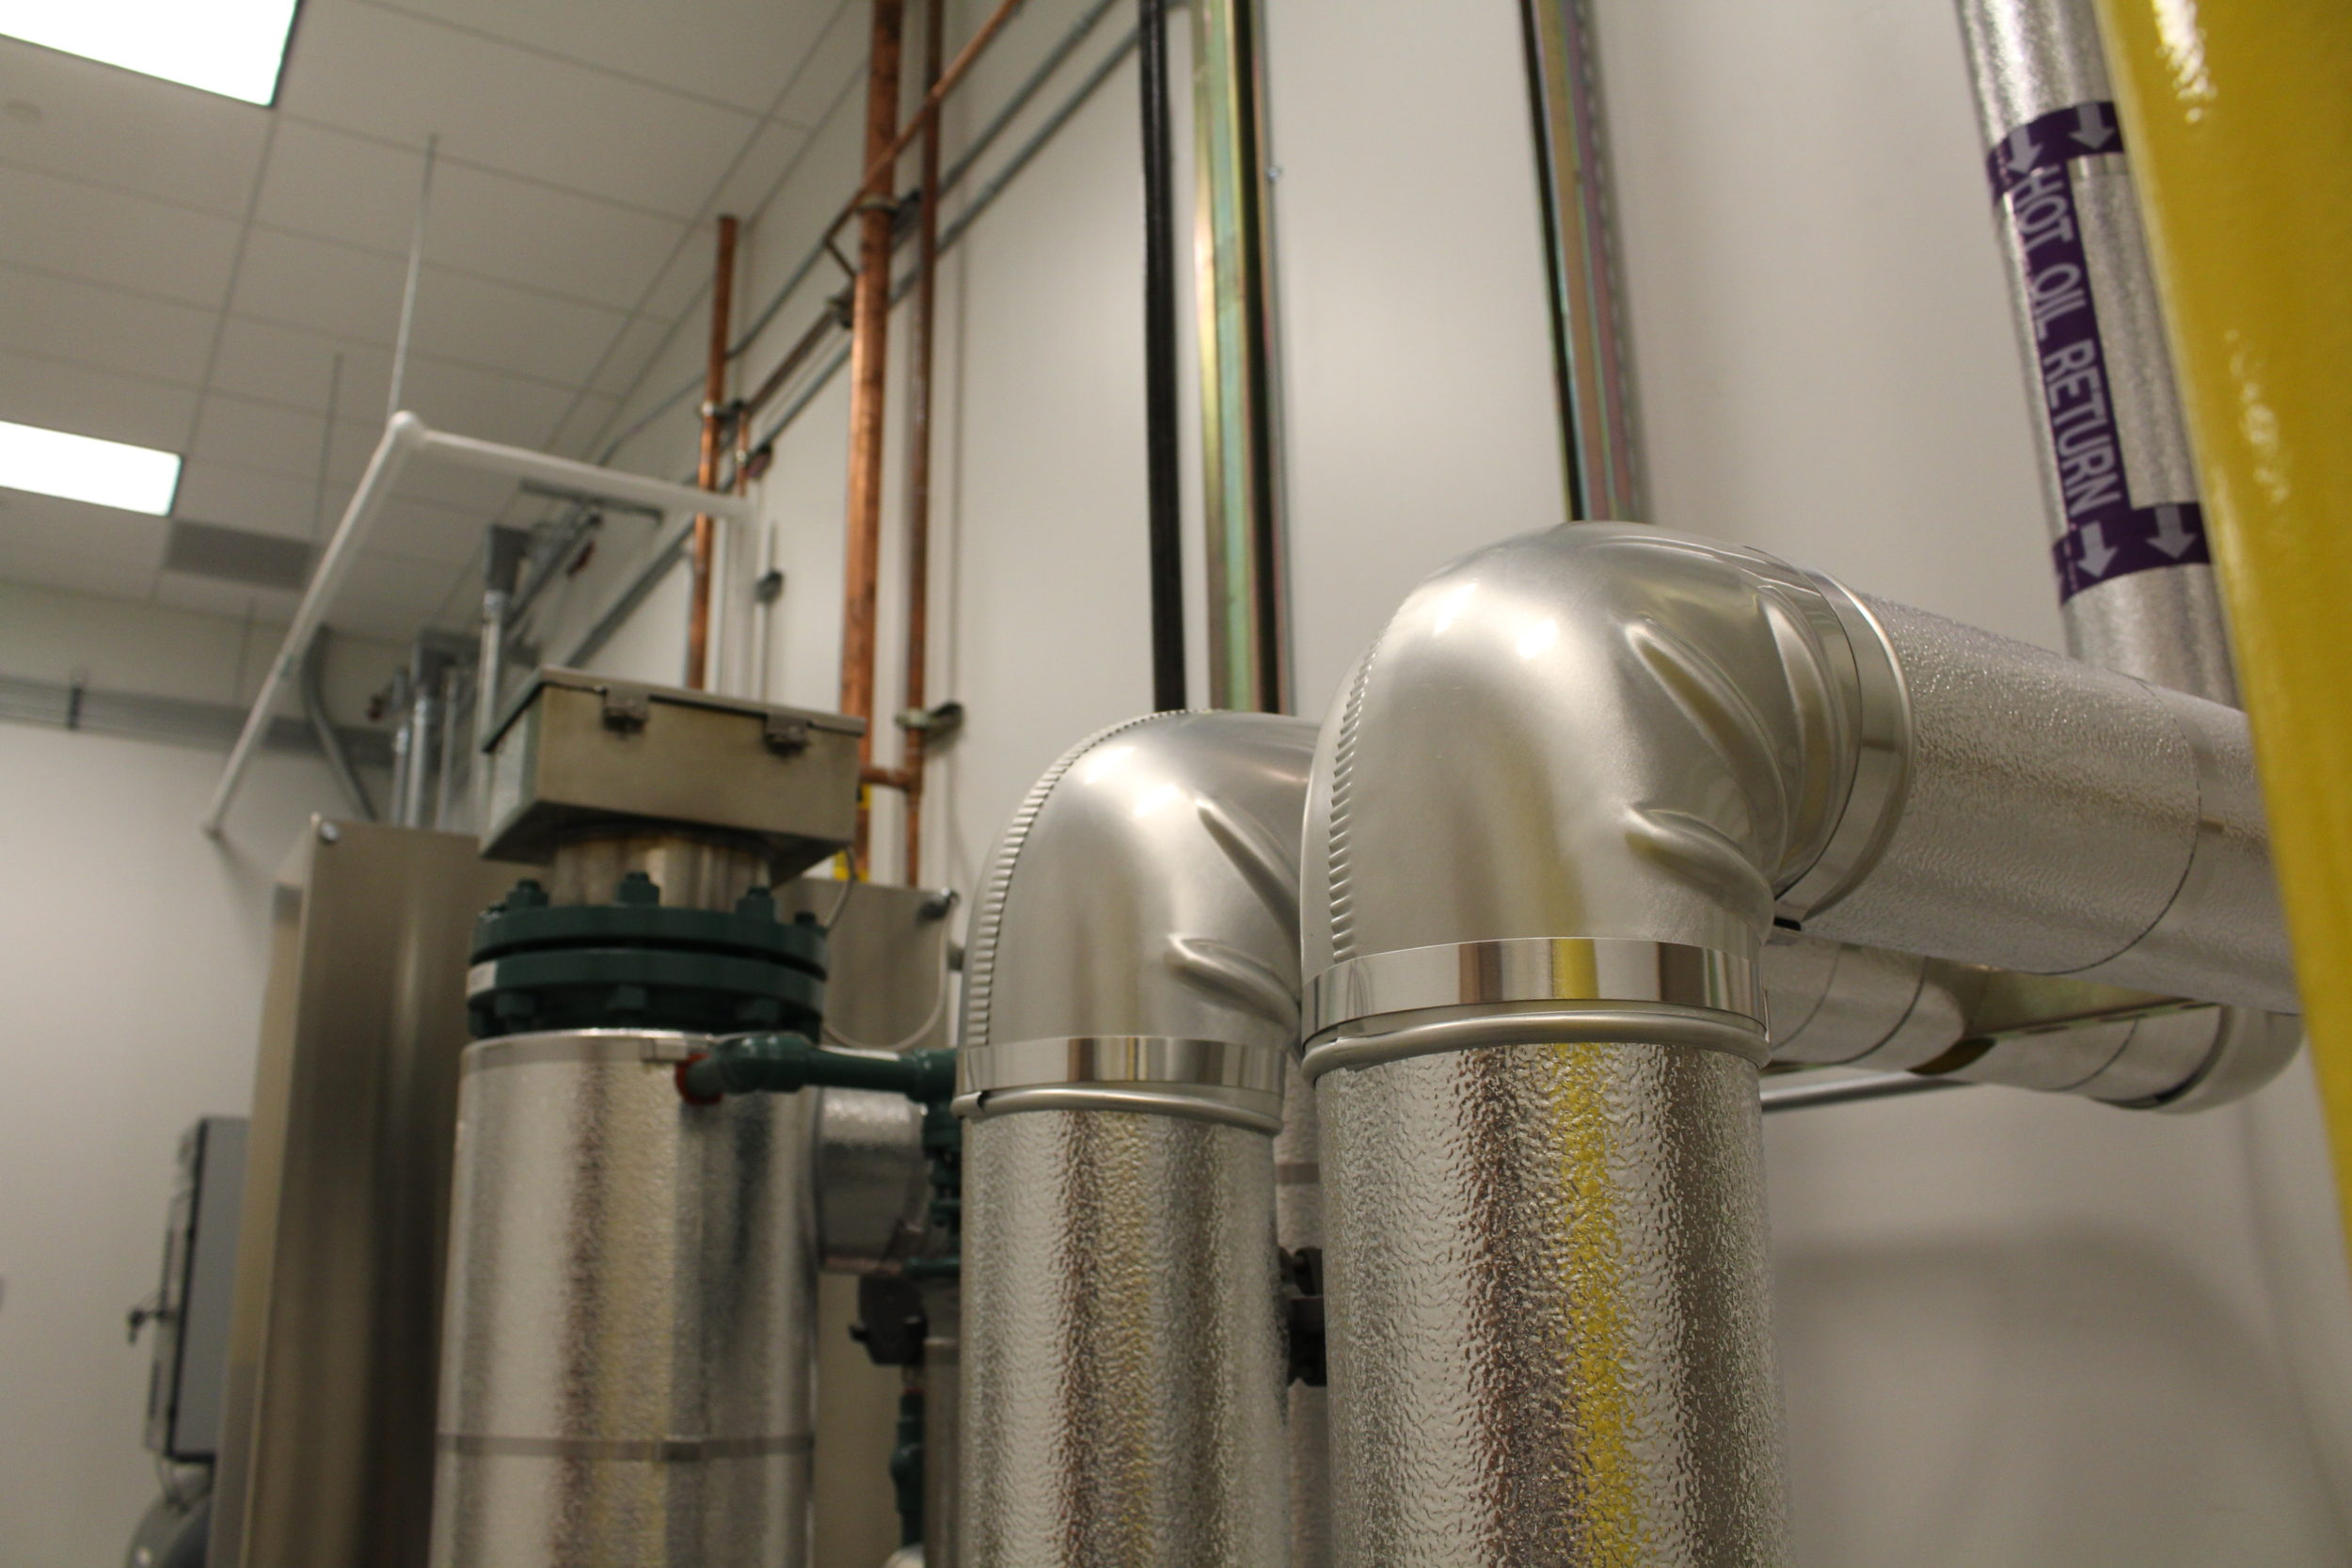 Image of ArthroCare CMC Equipment - Pipes